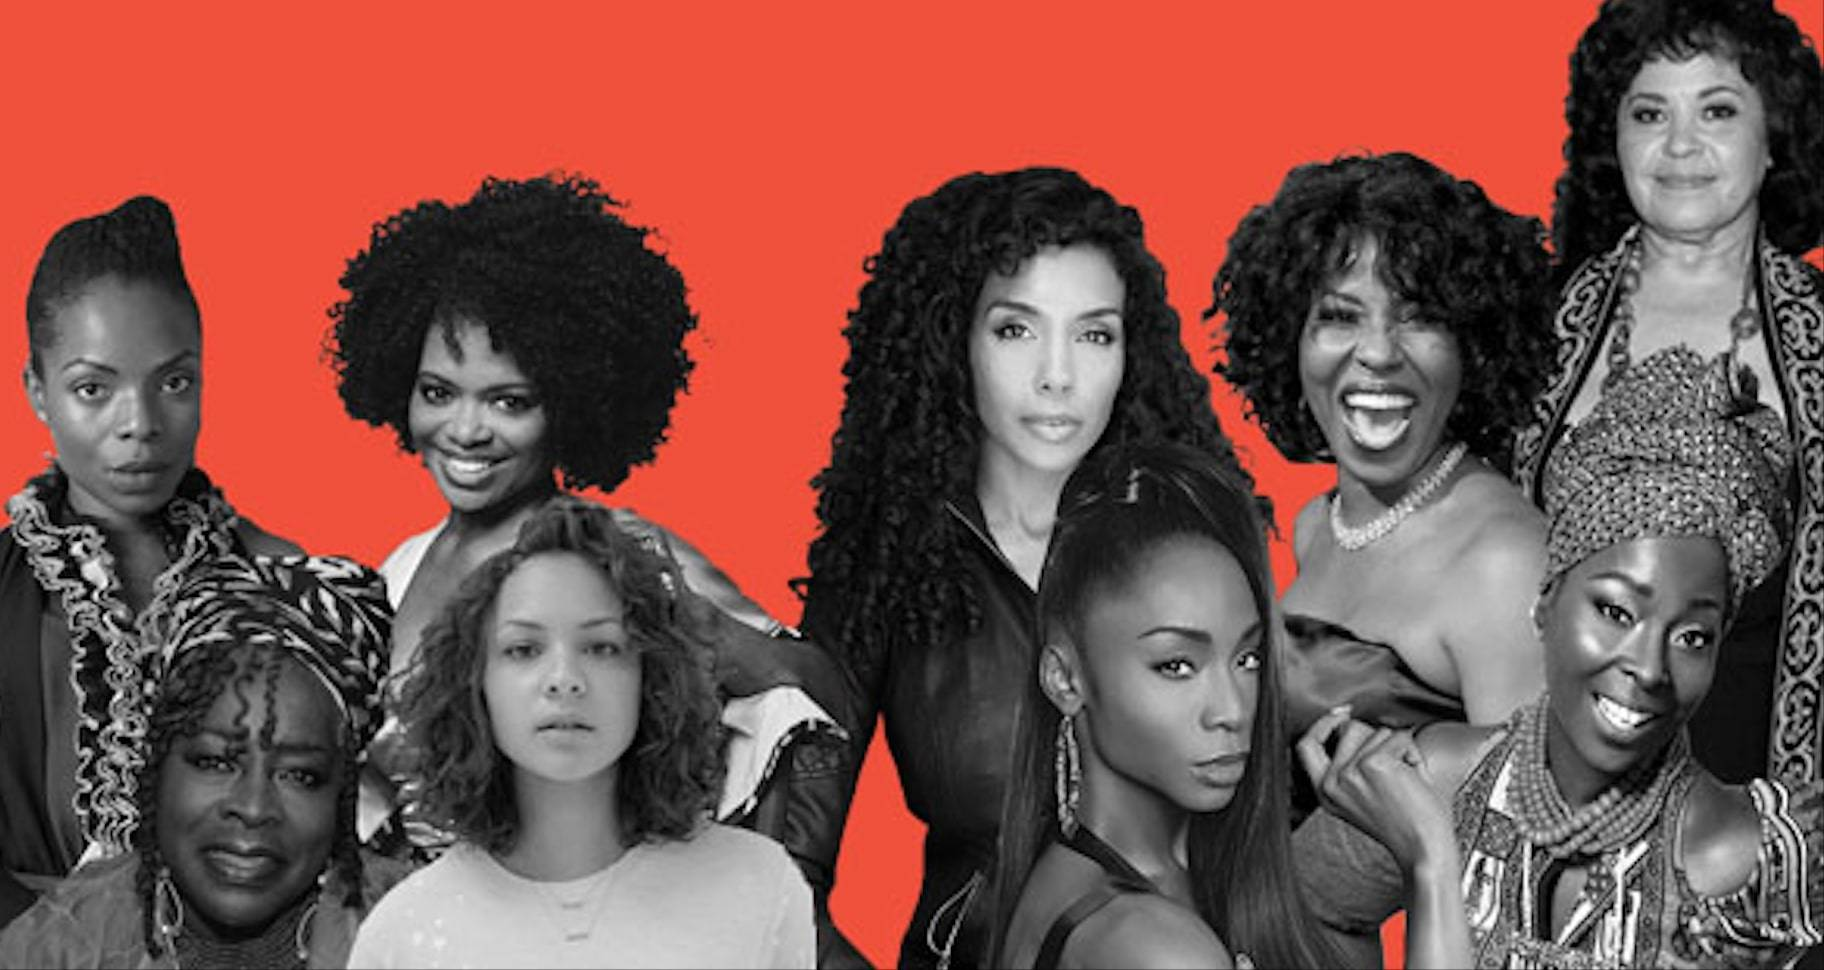 The '50in50' showcase will feature 50 original monologues written by 50 Black women and girls, and performed by a stellar cast of renown actors